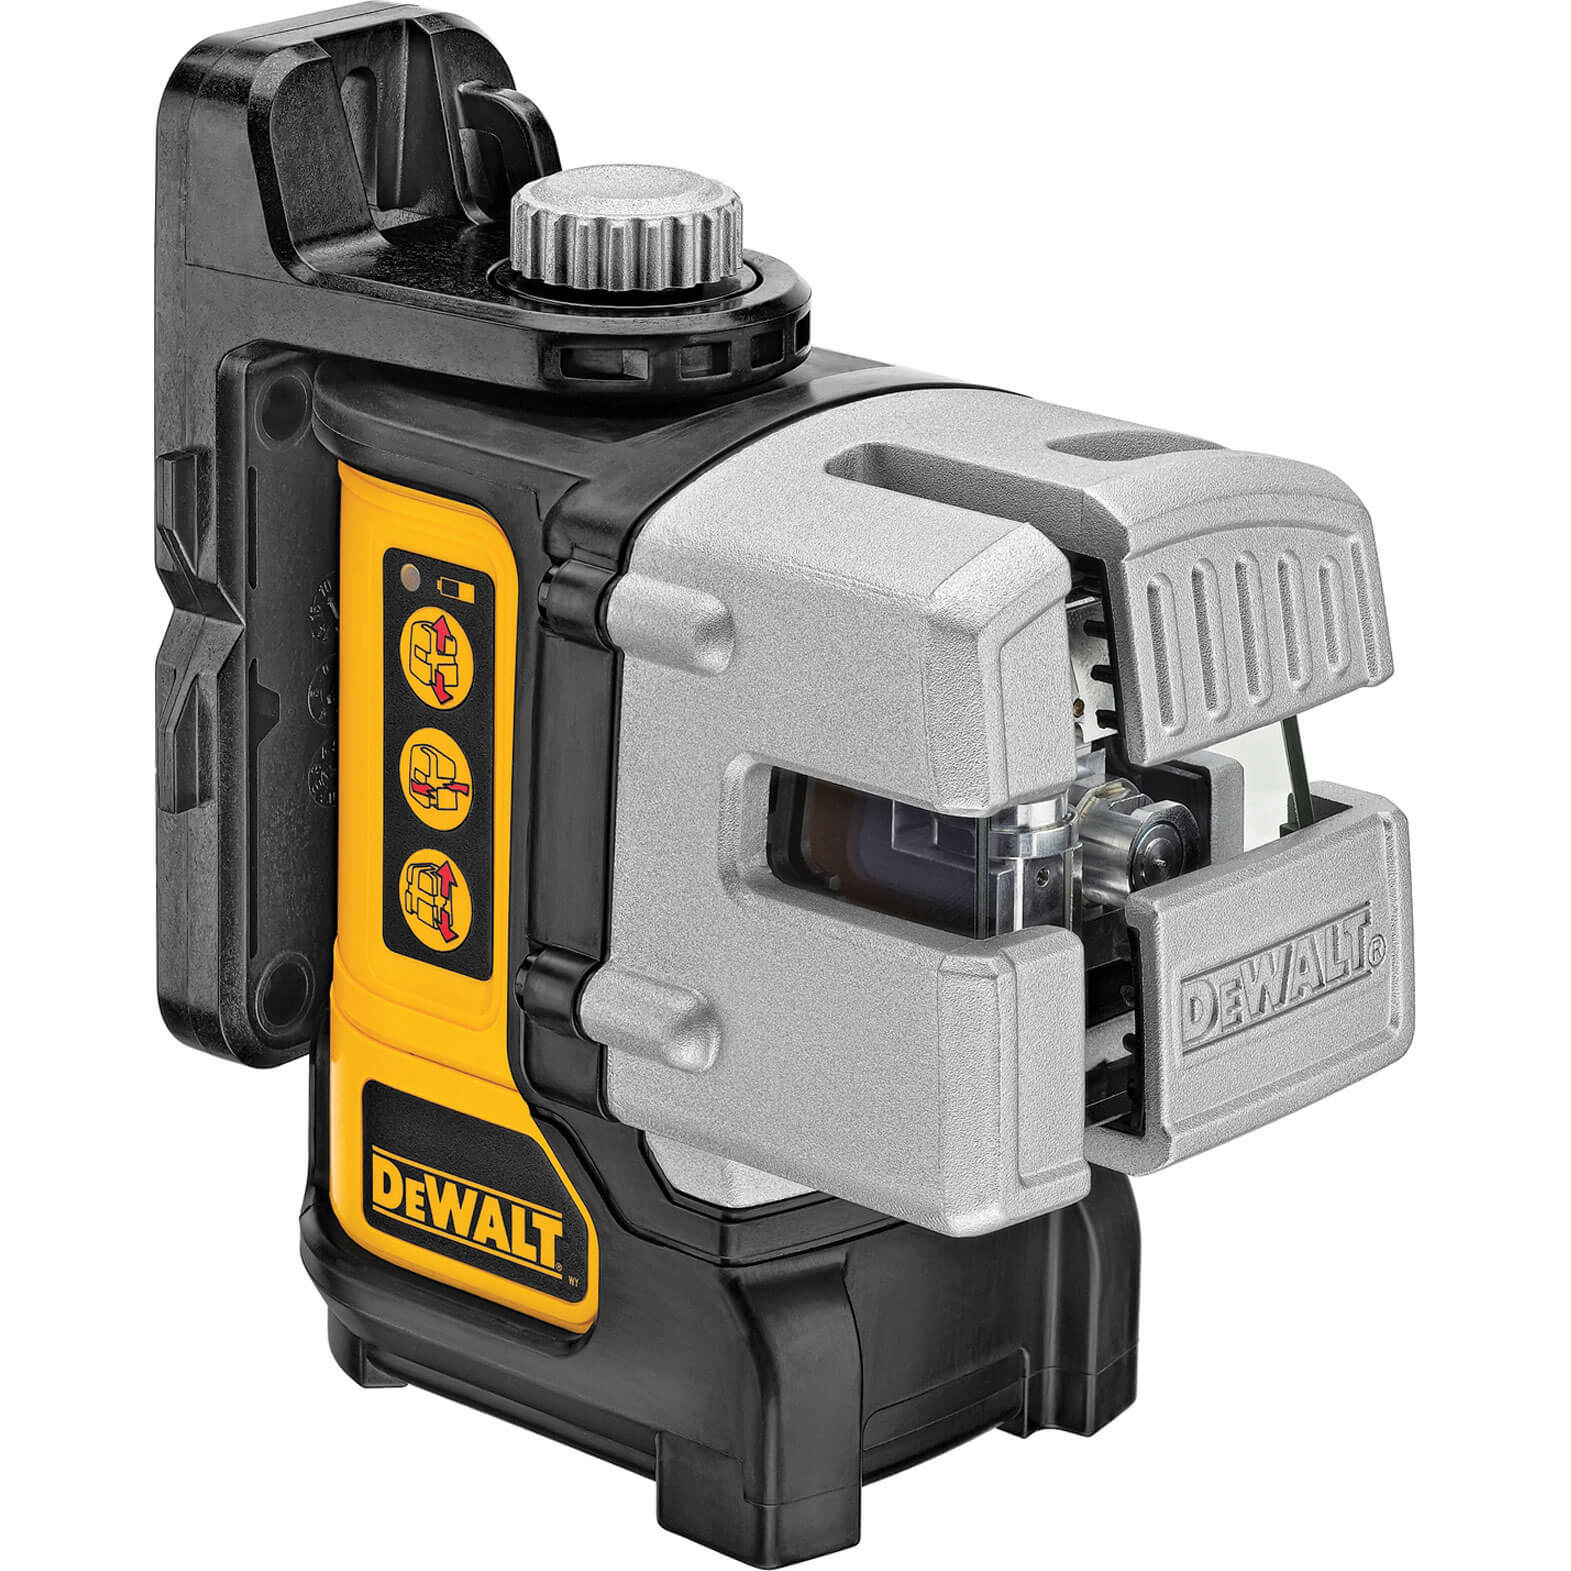 DeWalt DW089K Self Levelling Laser Level